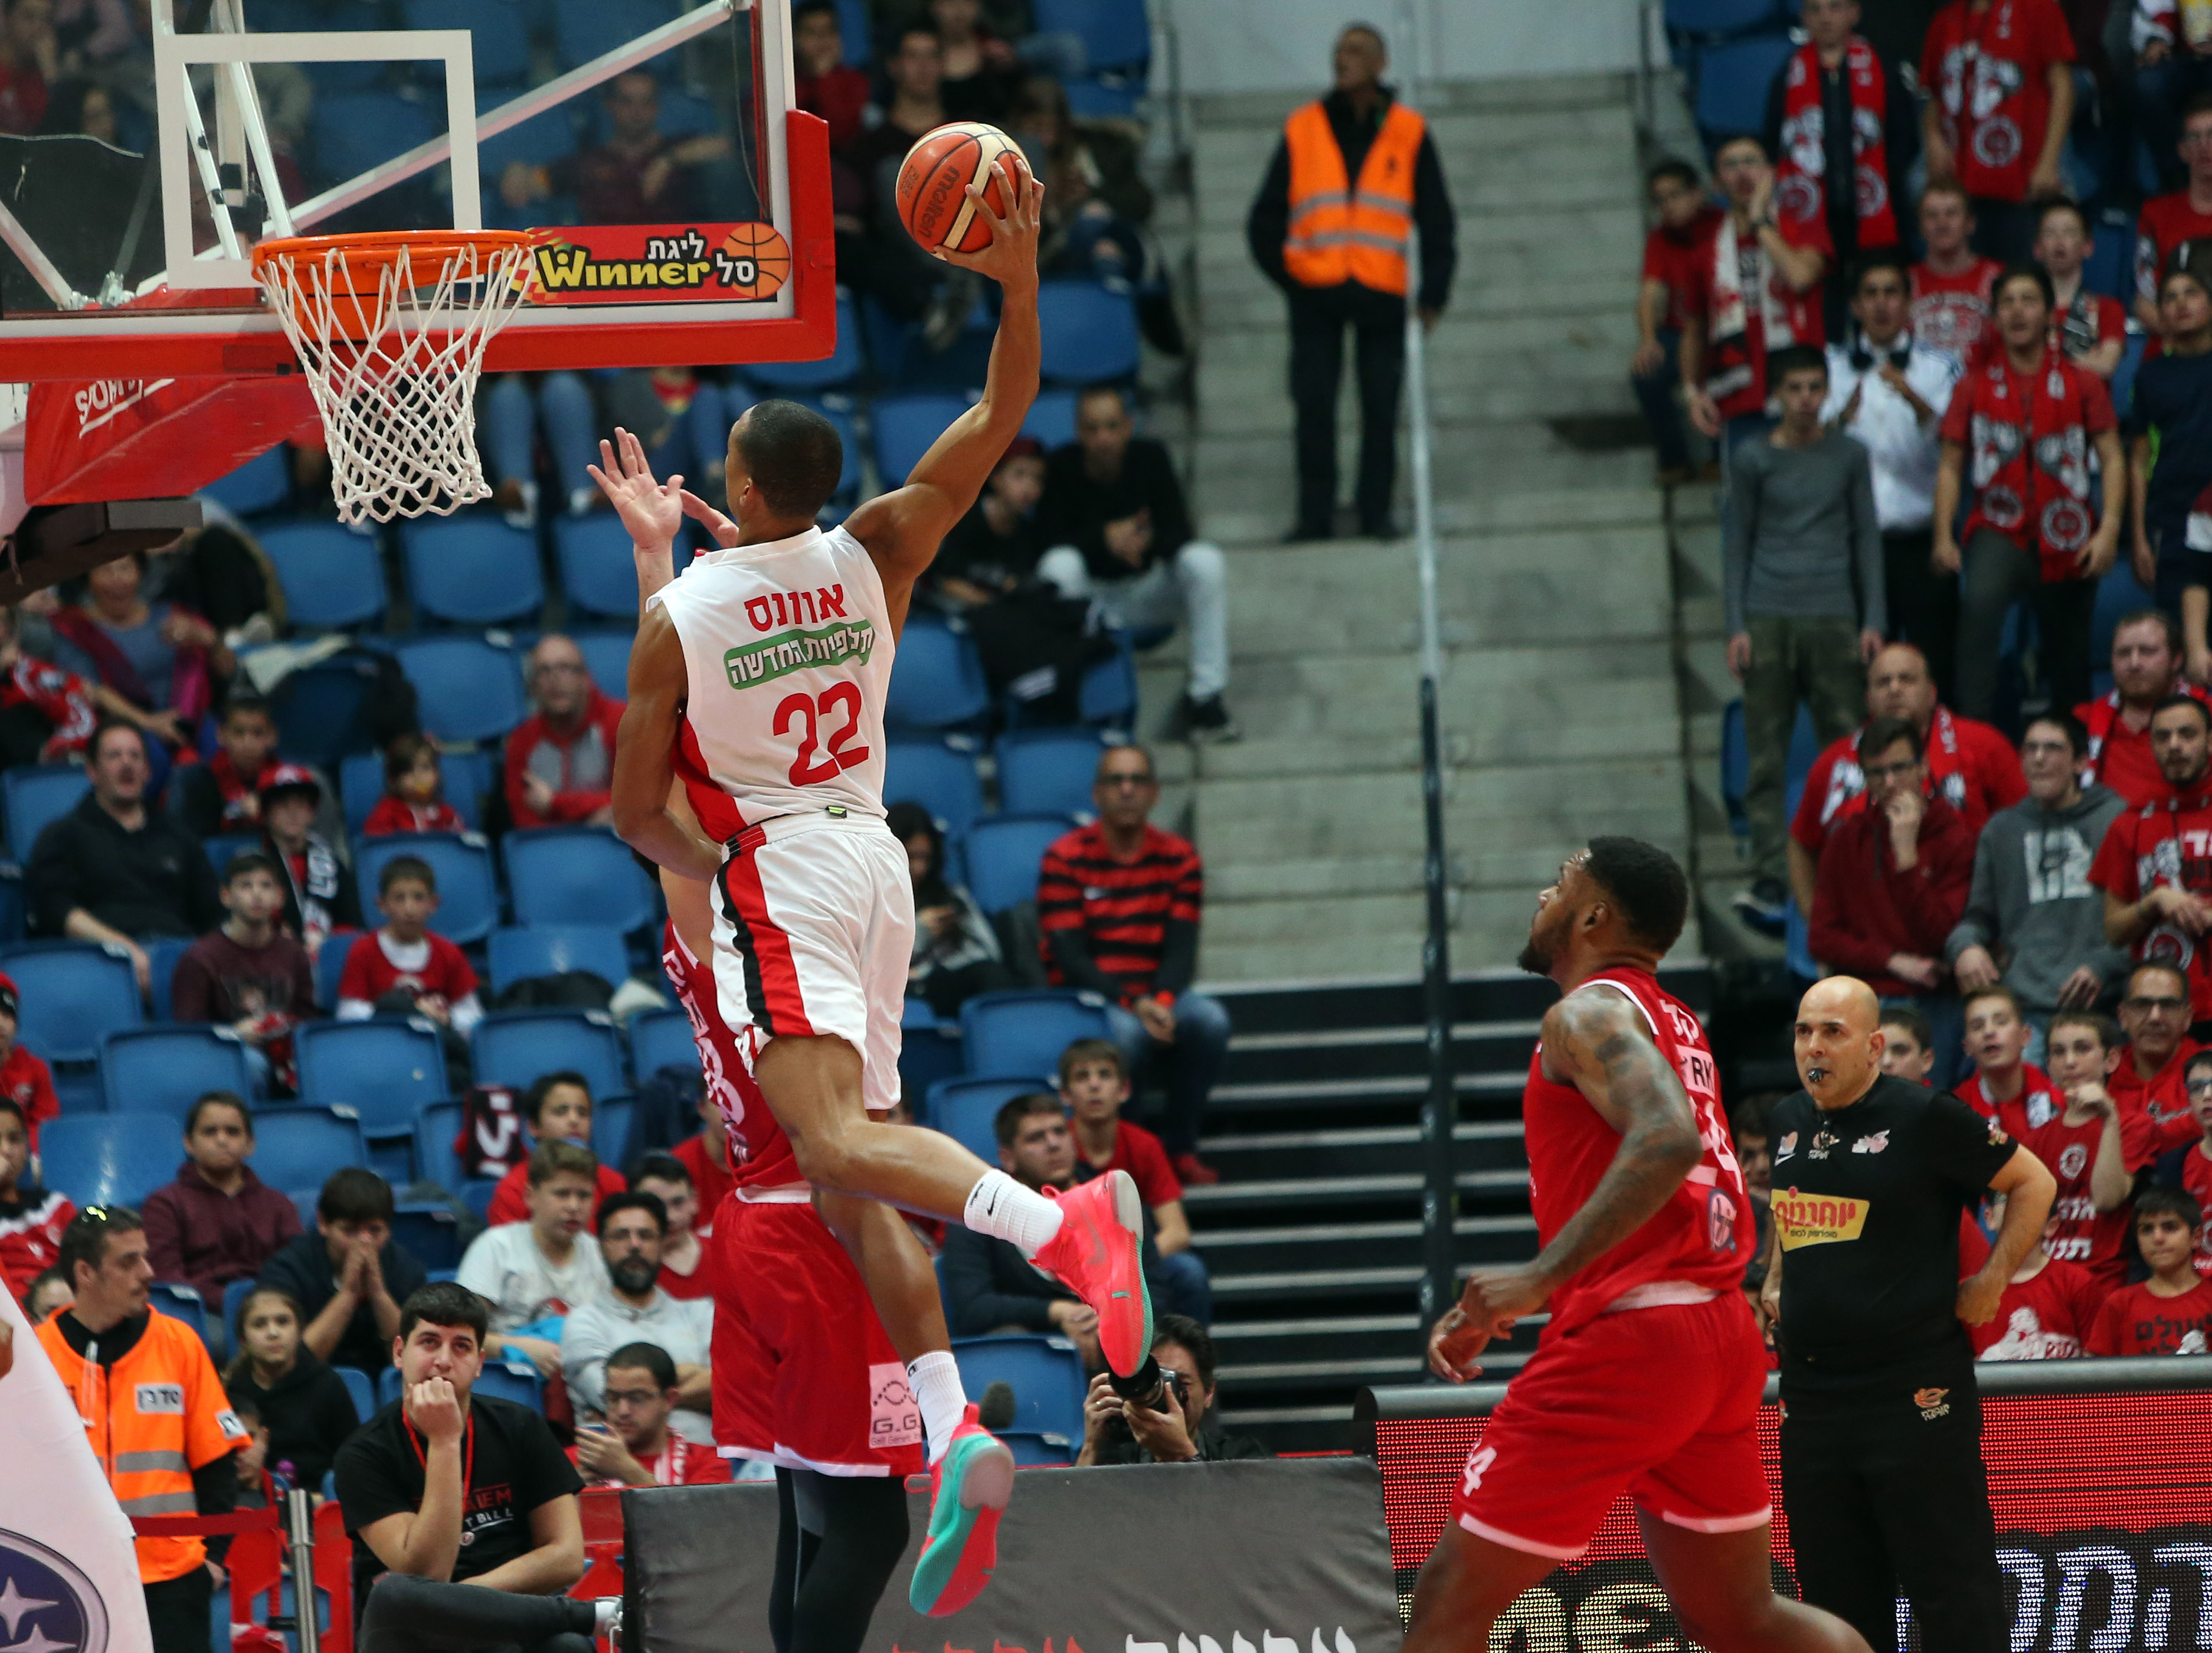 Day 15: Hapoel Jerusalem - Gilboa/Galil ...